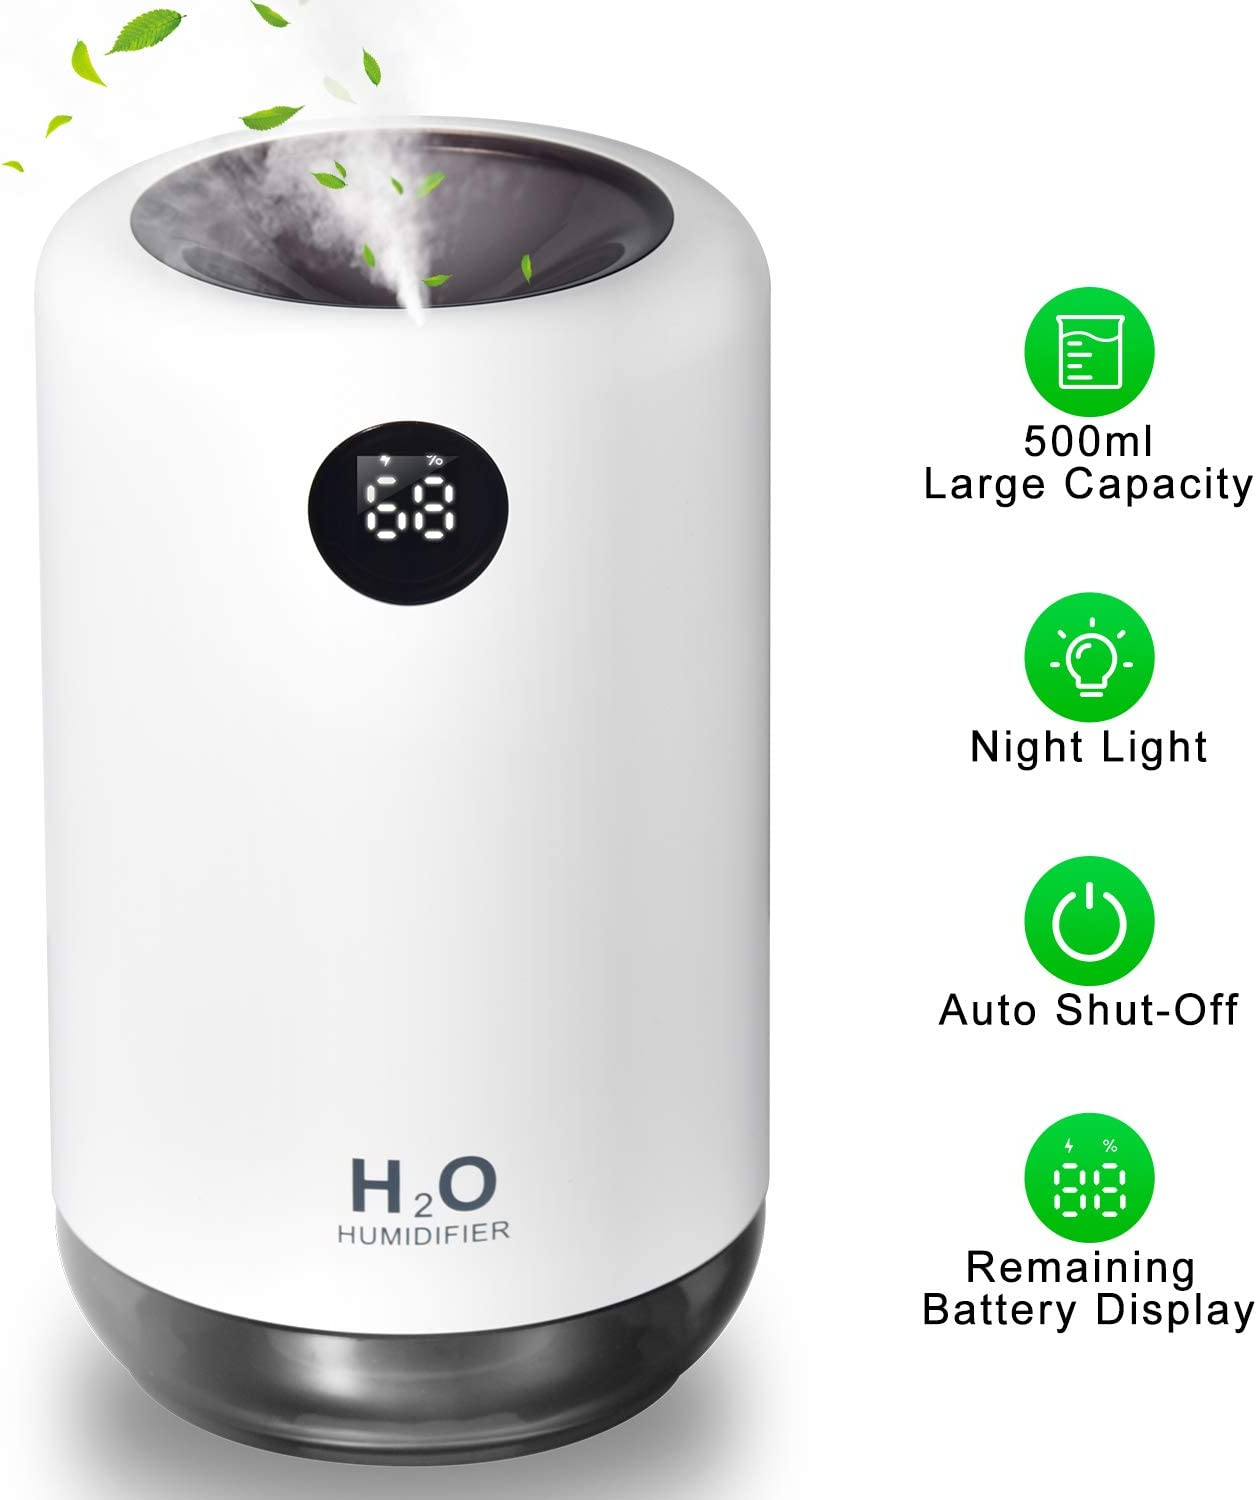 Portable Mini Humidifier, Small Cool Mist Humidifier, 500ml USB Air Humidifier, Desktop Humidifier for Baby Bedroom Travel Office Home, Adjustable Mist Mode, Ultra-Quiet and Auto Shut-Off